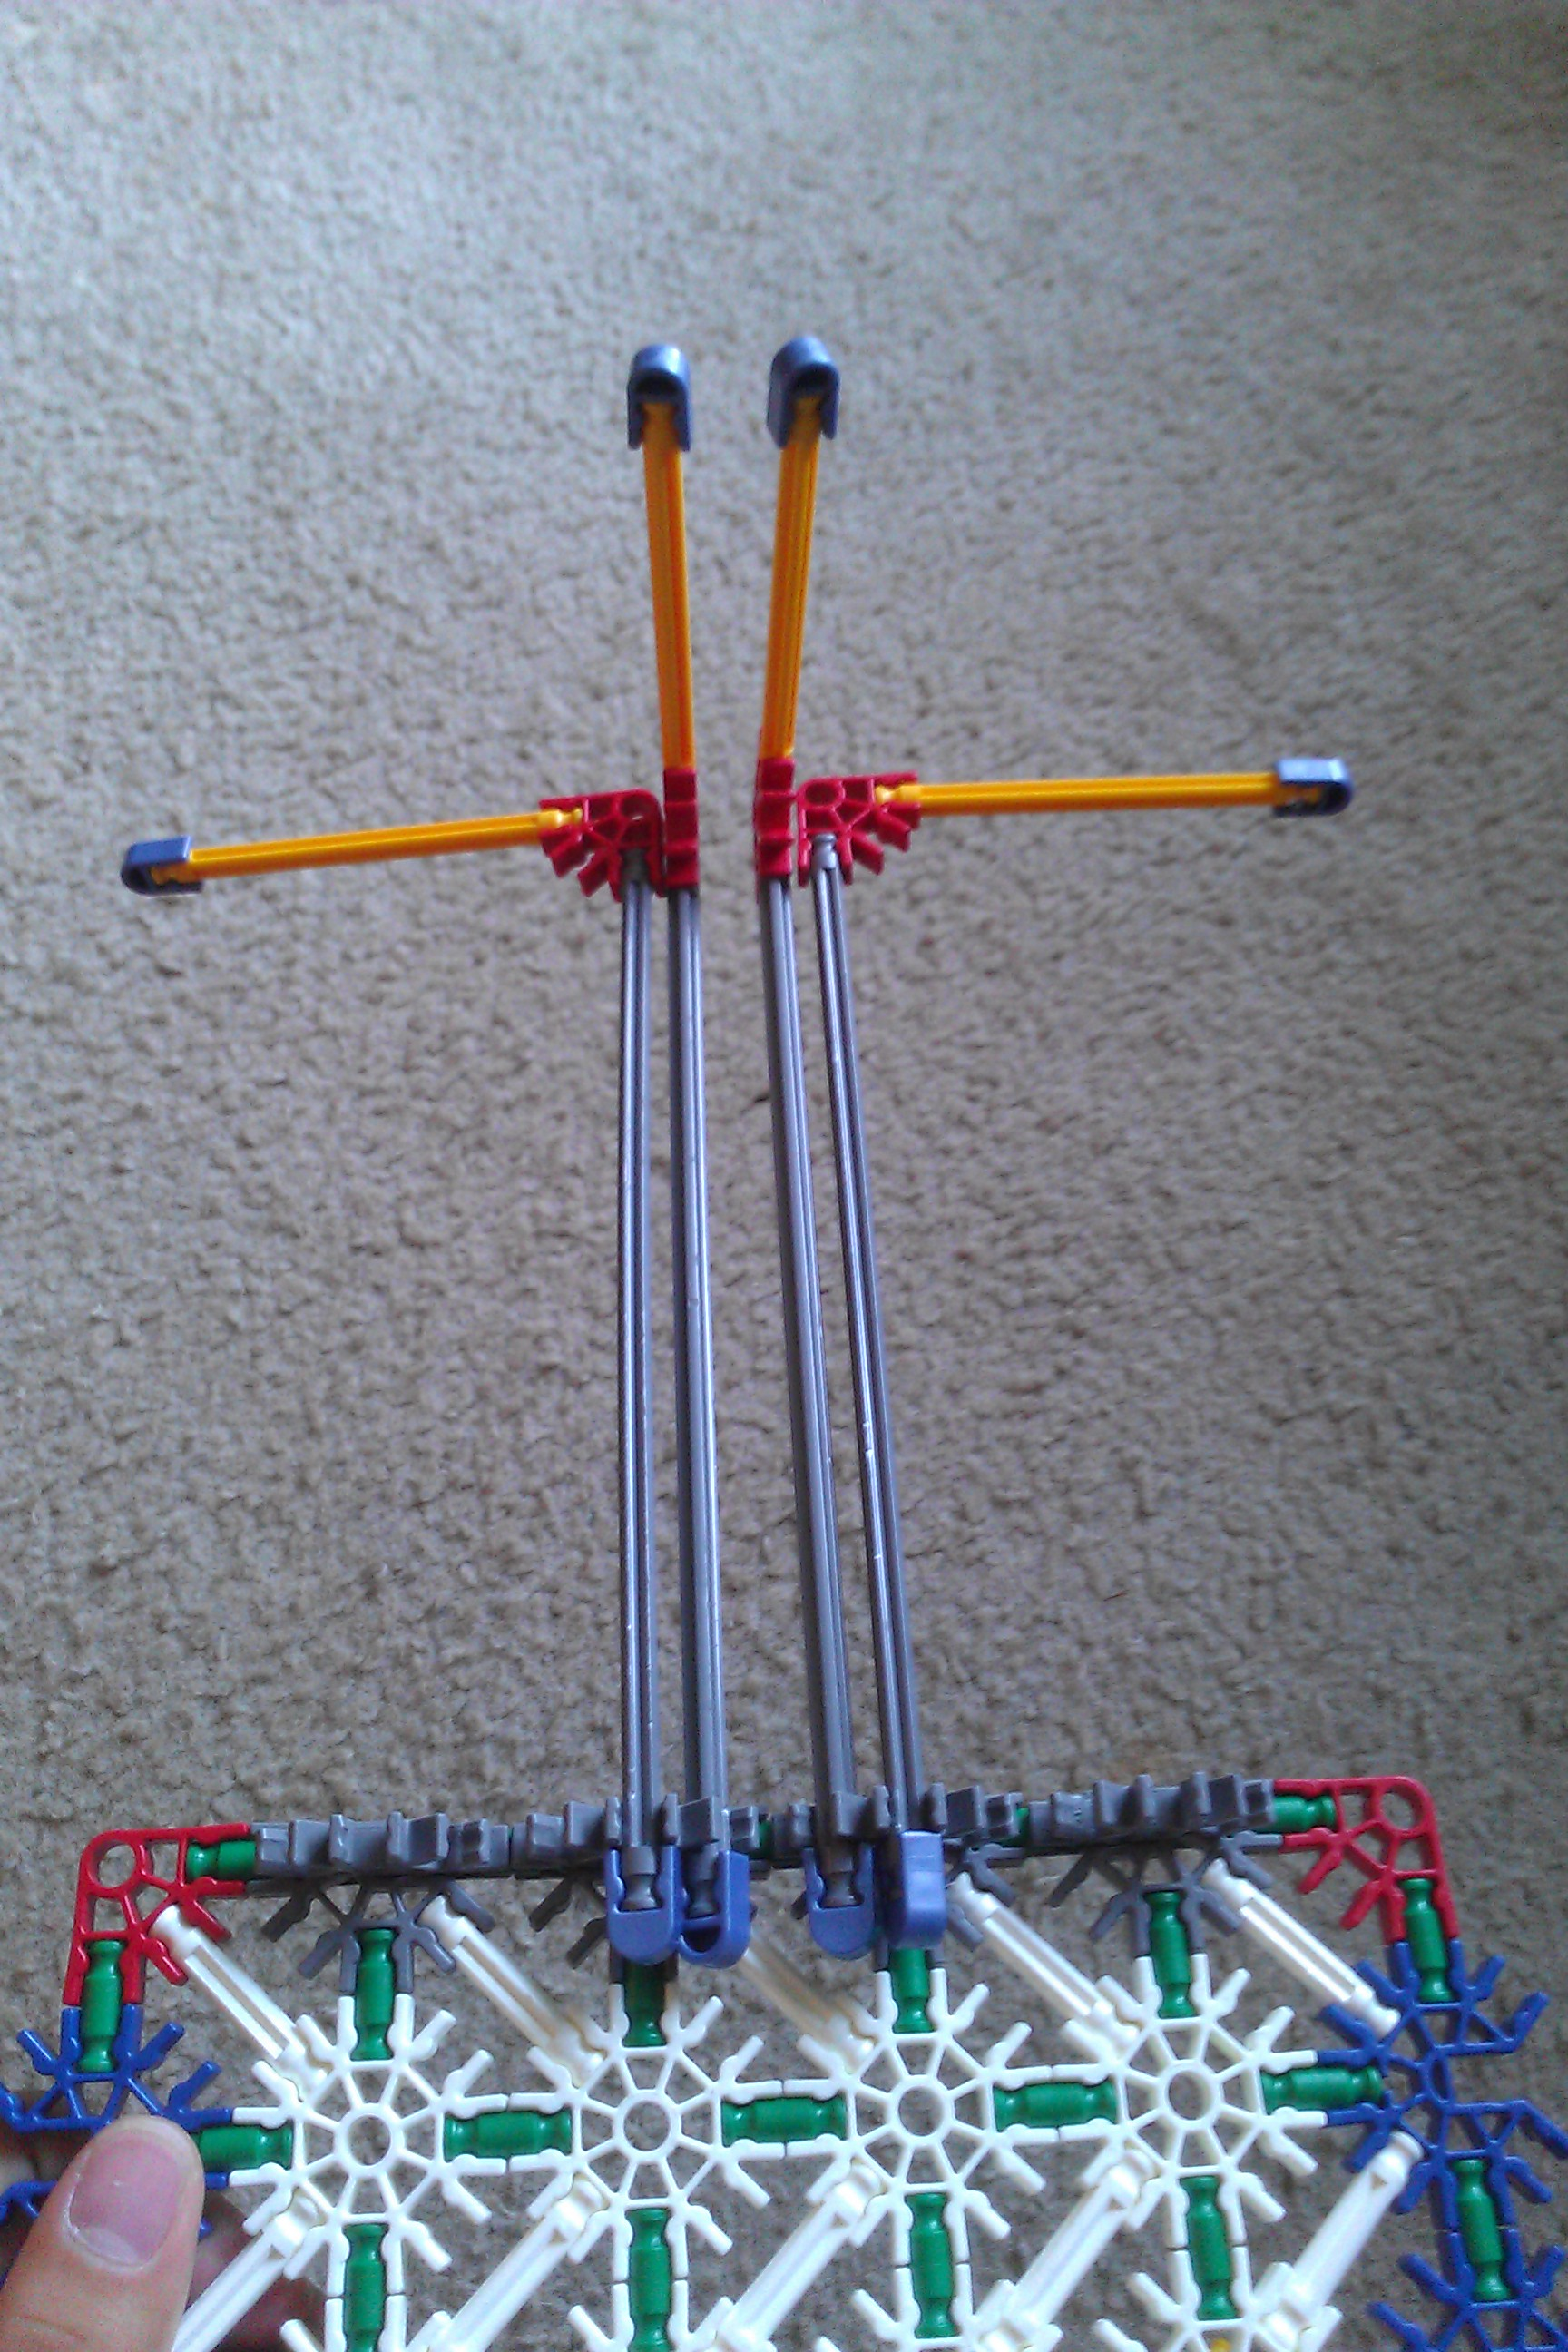 Picture of Hooks: Attaching